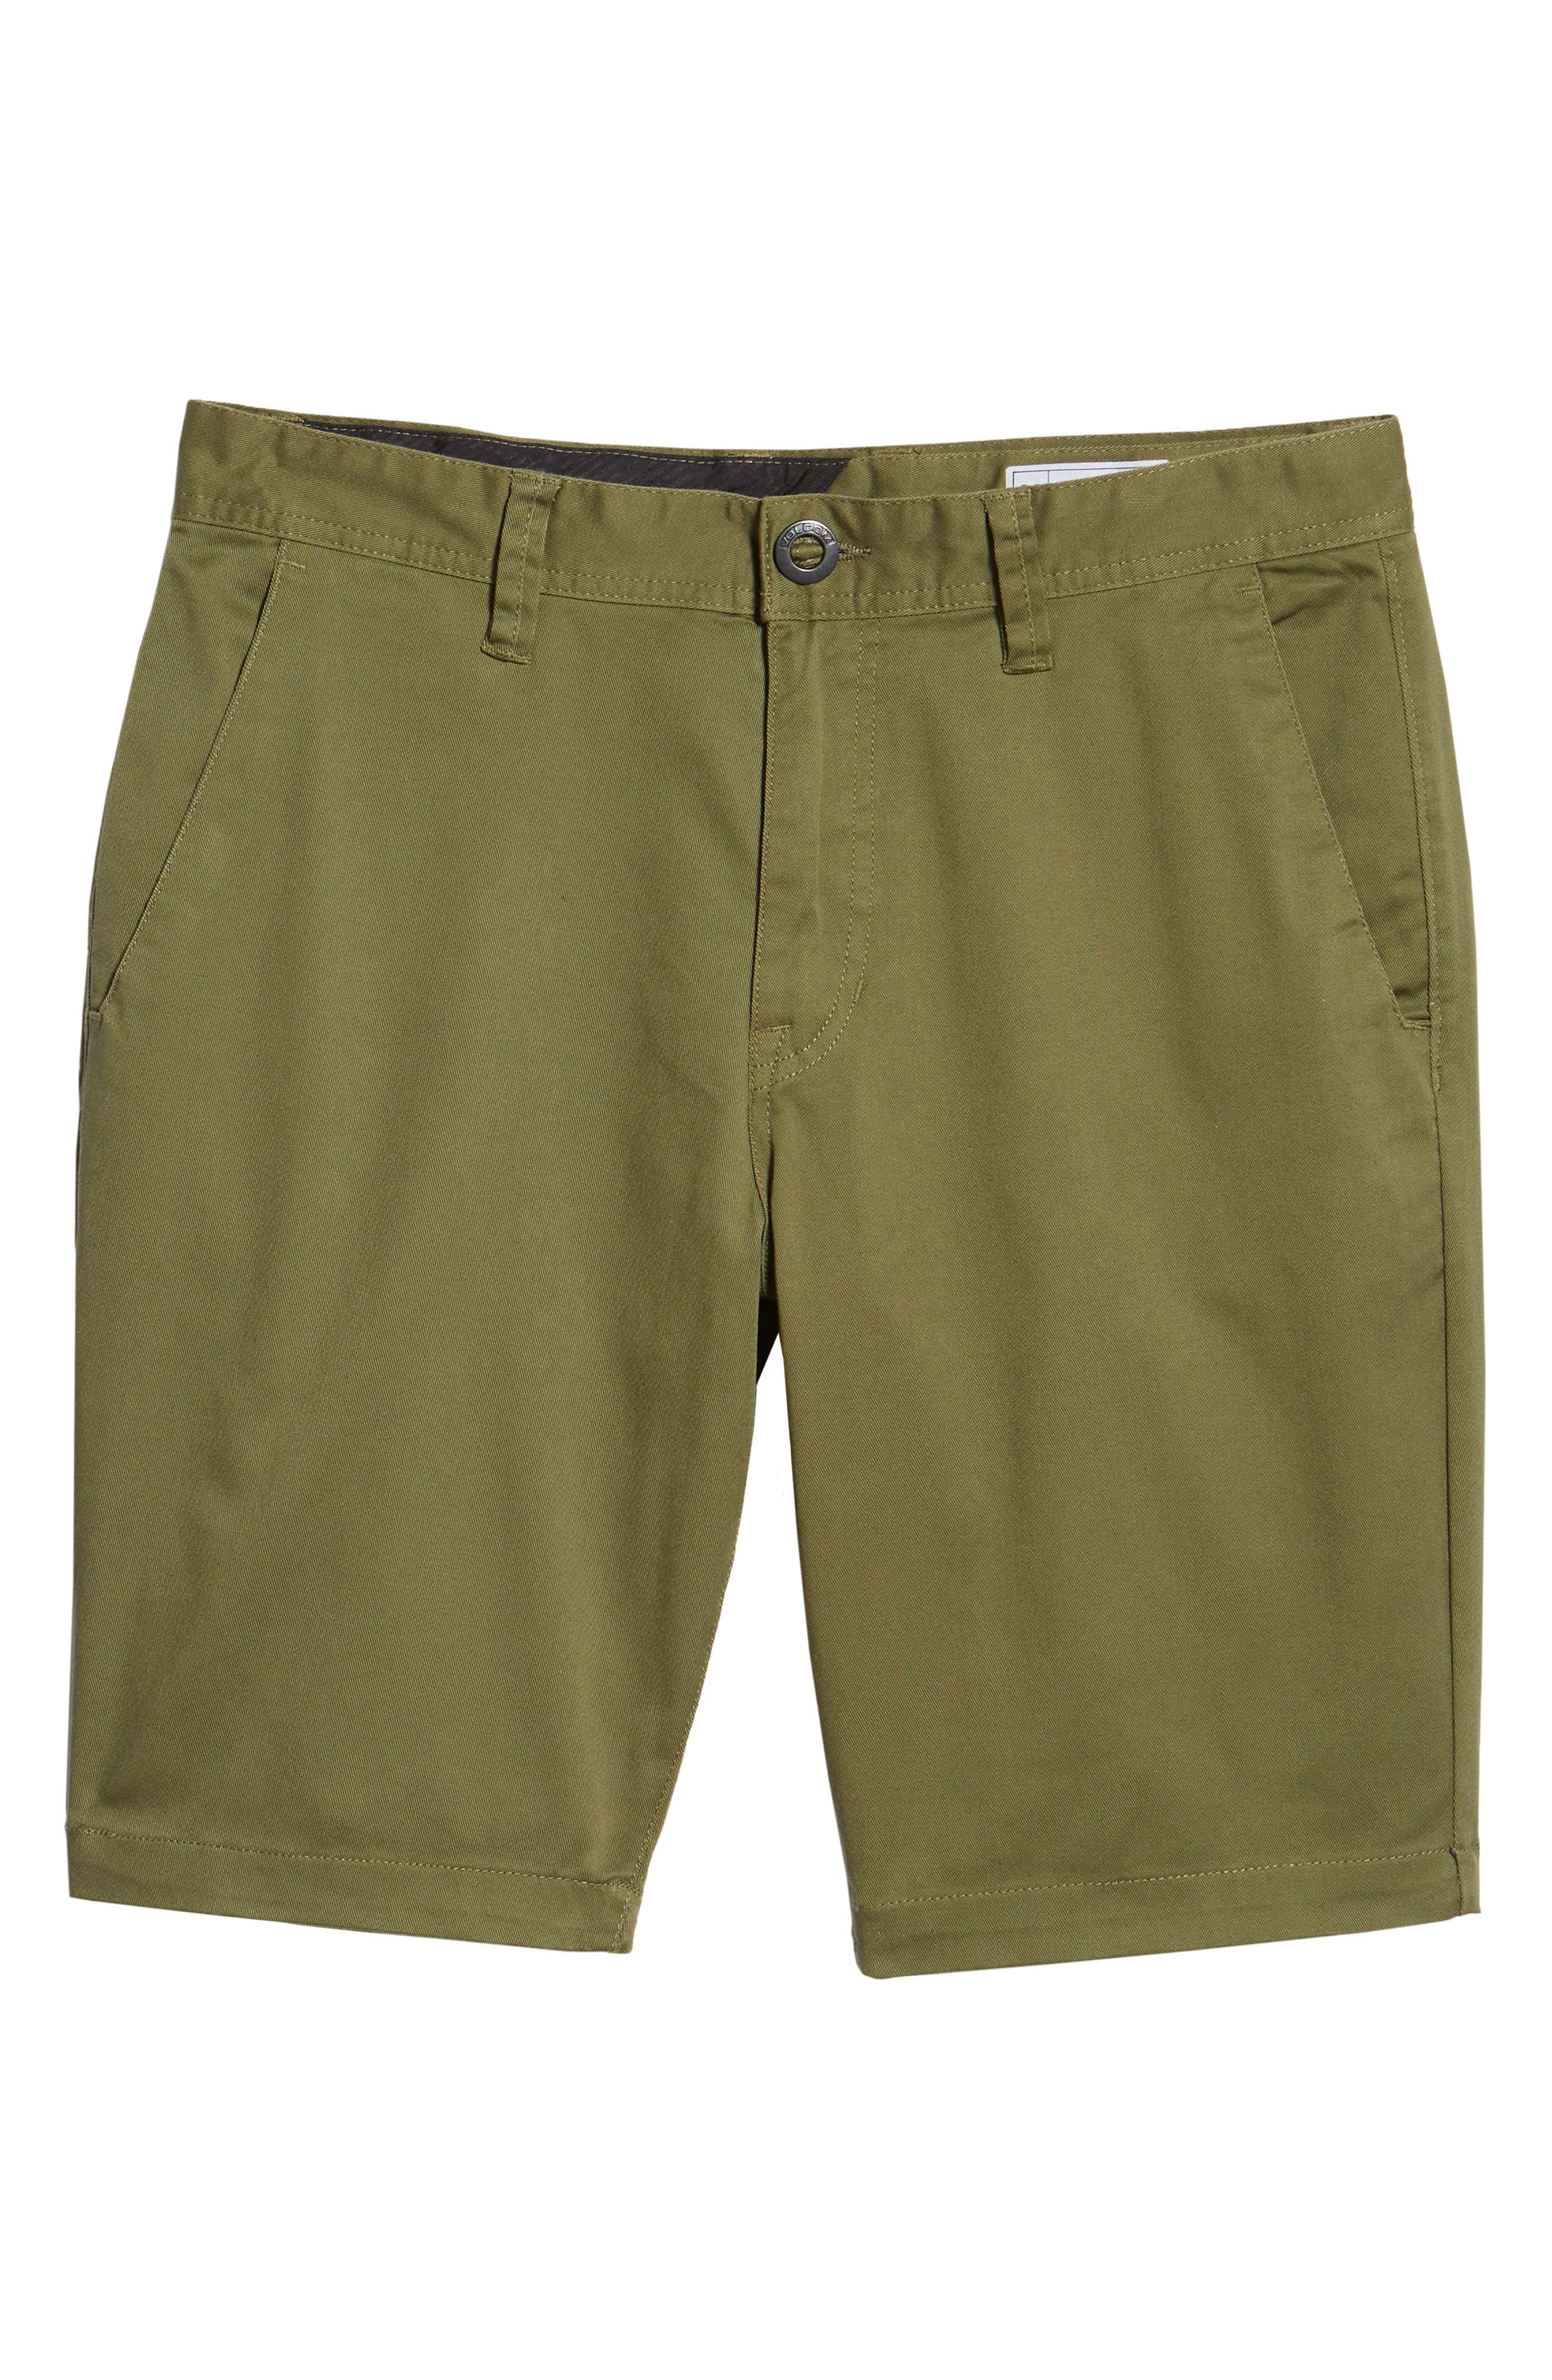 'Modern' Stretch Chino Shorts,                             Alternate thumbnail 6, color,                             VINE GREEN